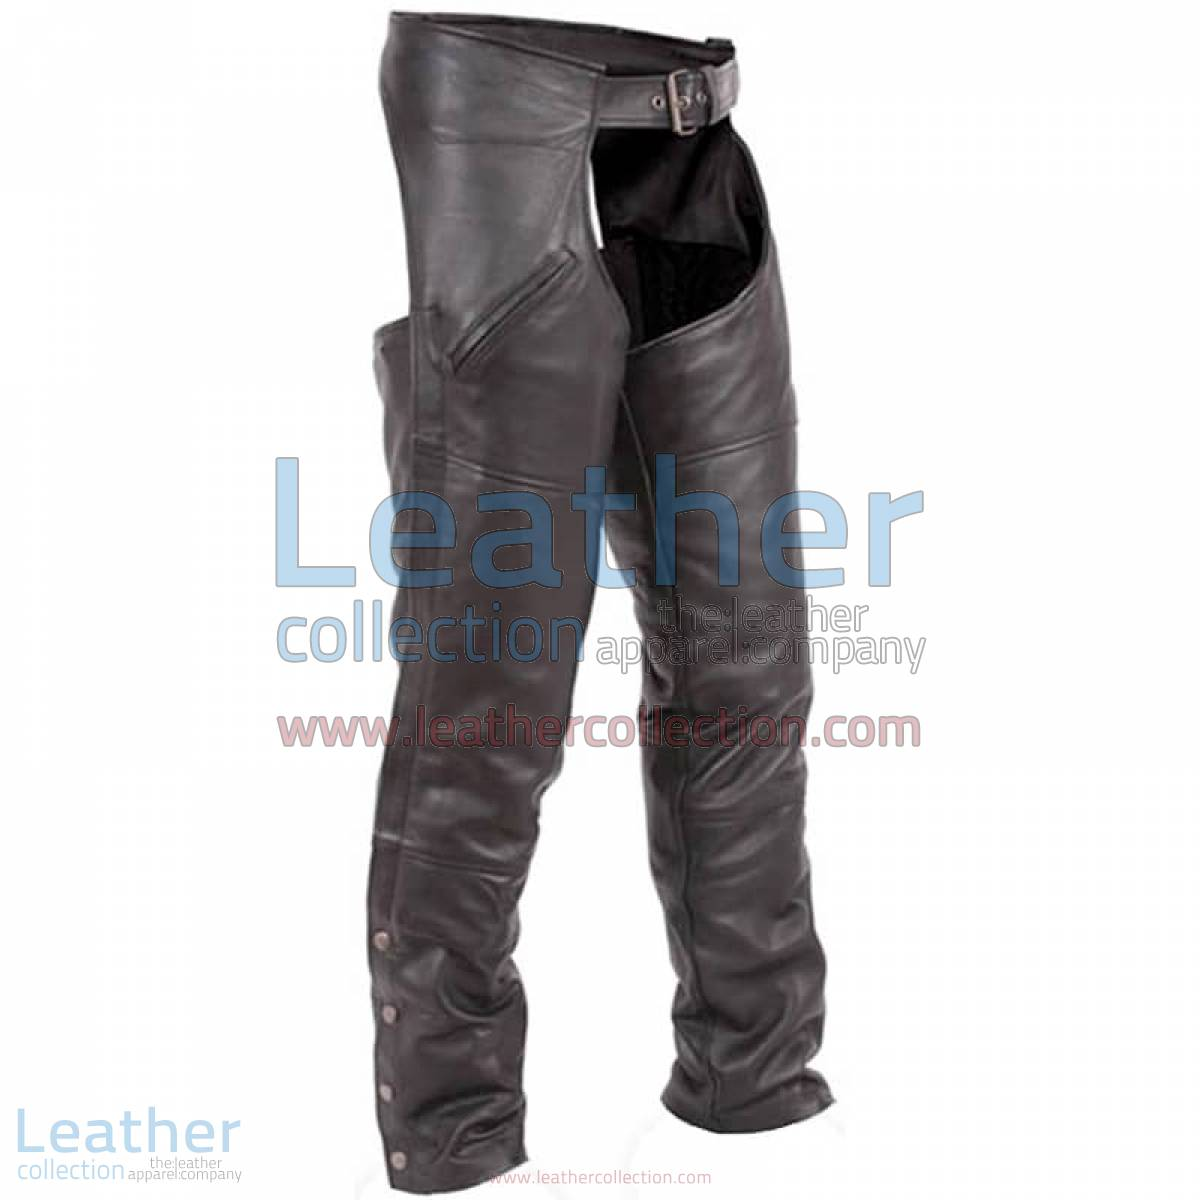 Premium Black Leather Motorbike Chaps | motorcycle chaps,Premium Black Leather motorcycle Chaps